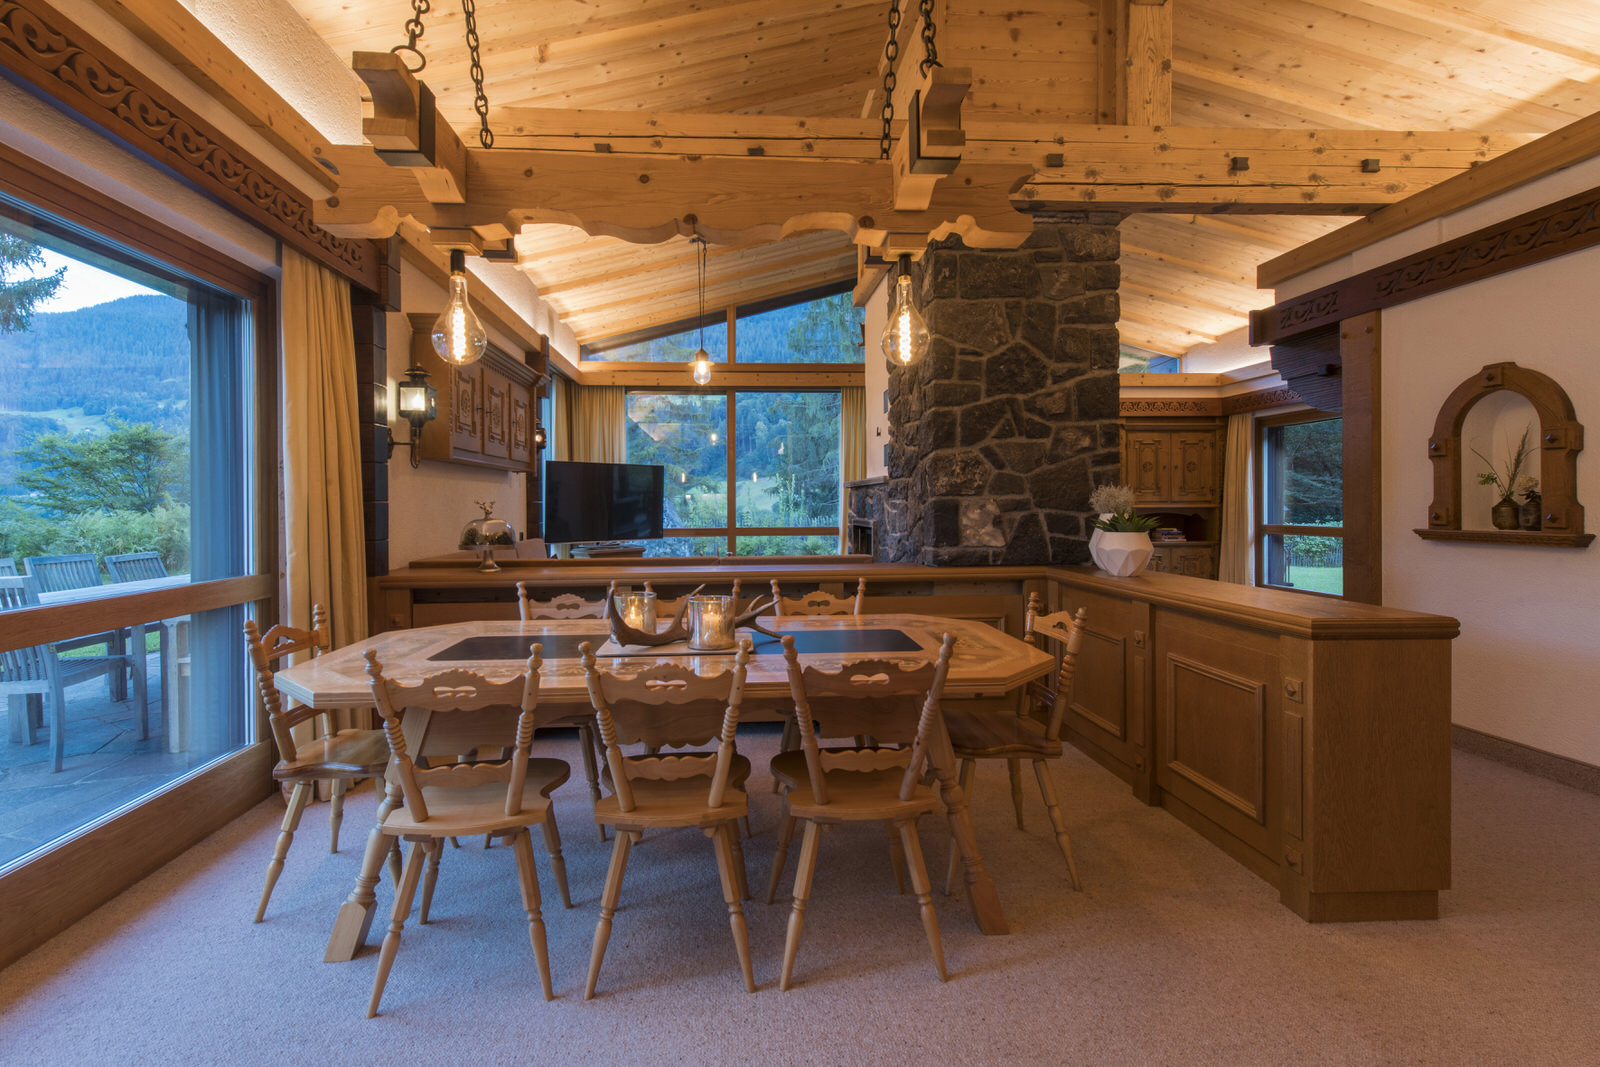 Rappakopf Forrest house in the Montafon - dining table